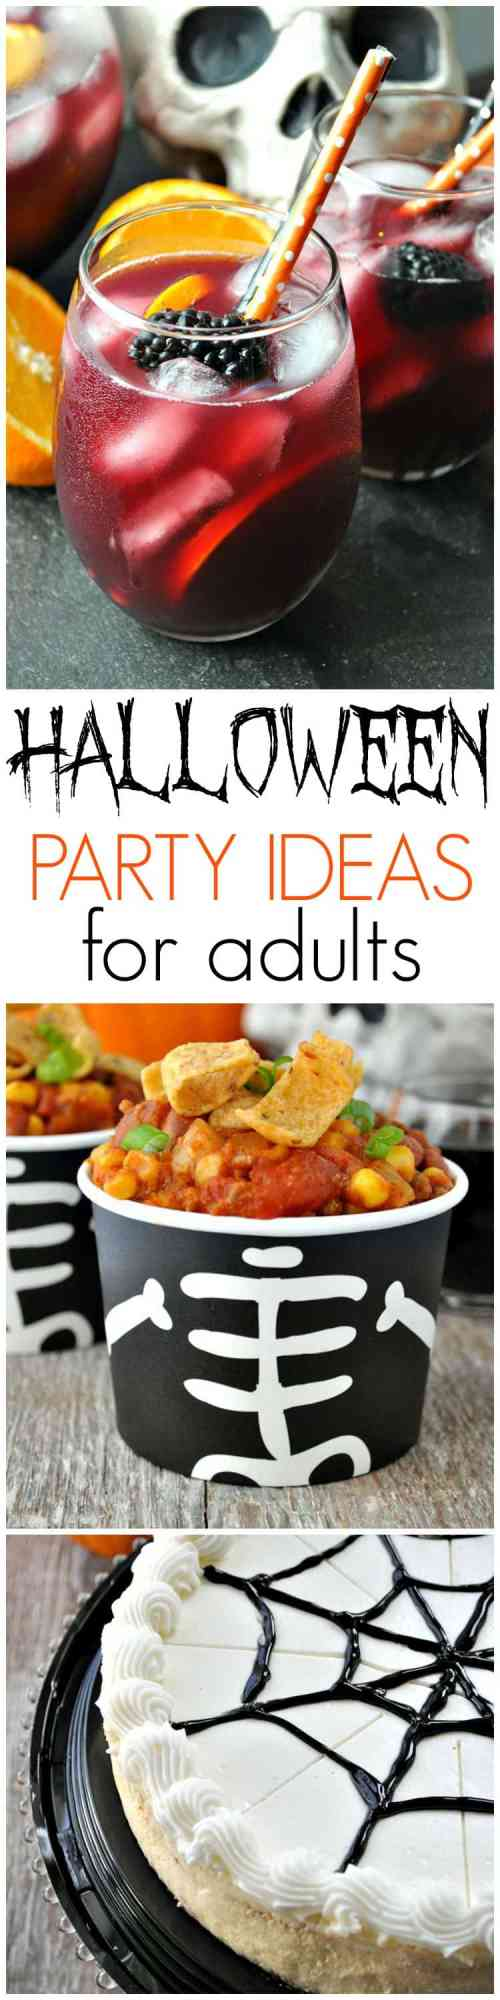 Pleasing Adults Halloween Office Party Games Adults Halloween Party Ideas Halloween Party Ideas Adults Adults Slow Cooker Pumpkin Chili Halloween Party Ideas